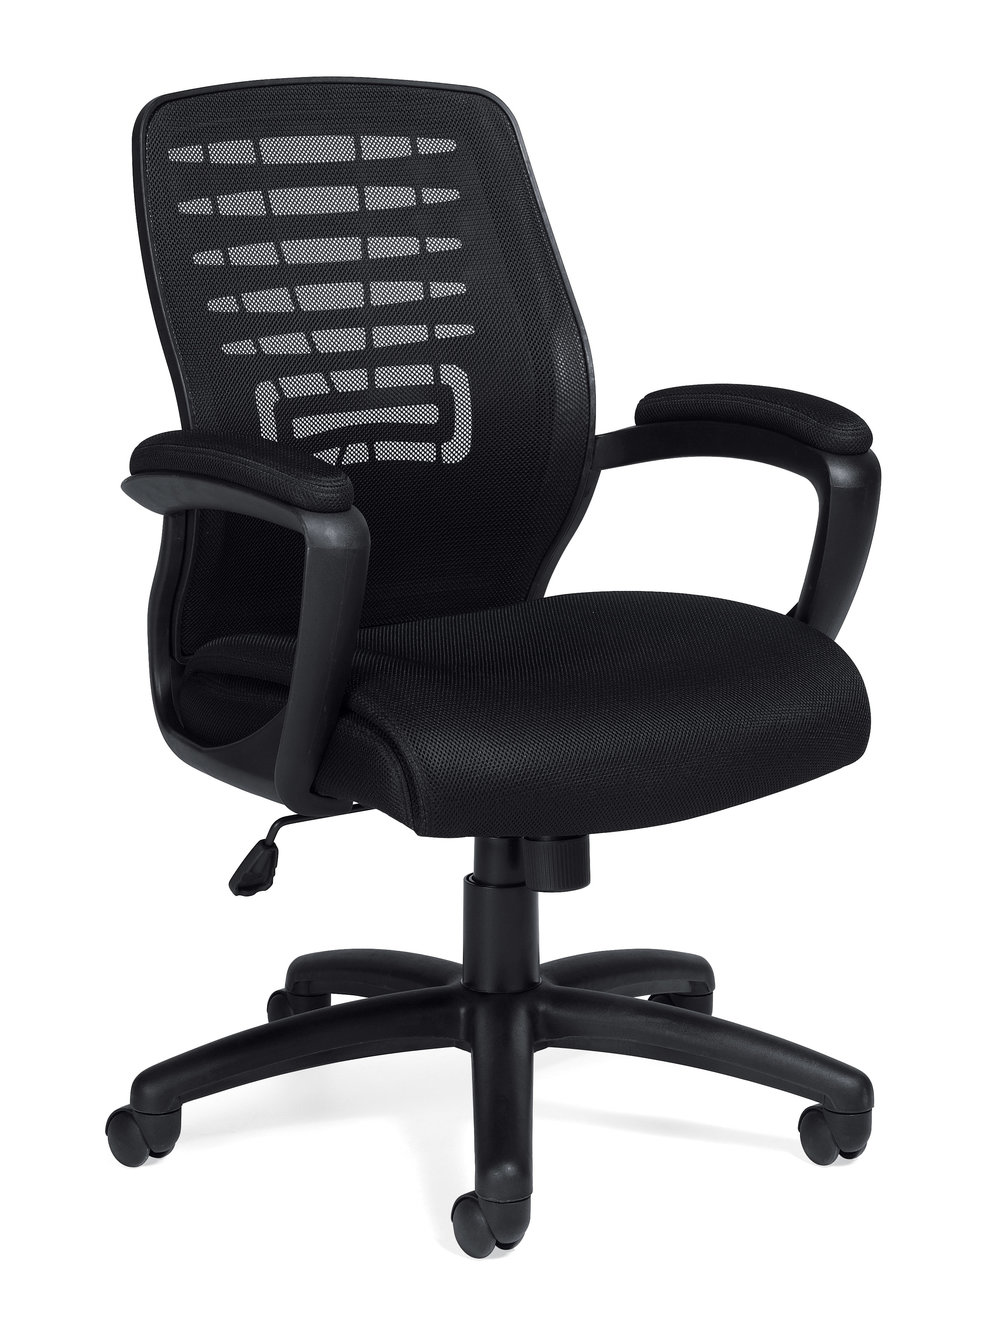 OTG11750B Mesh Back Manager's Chair